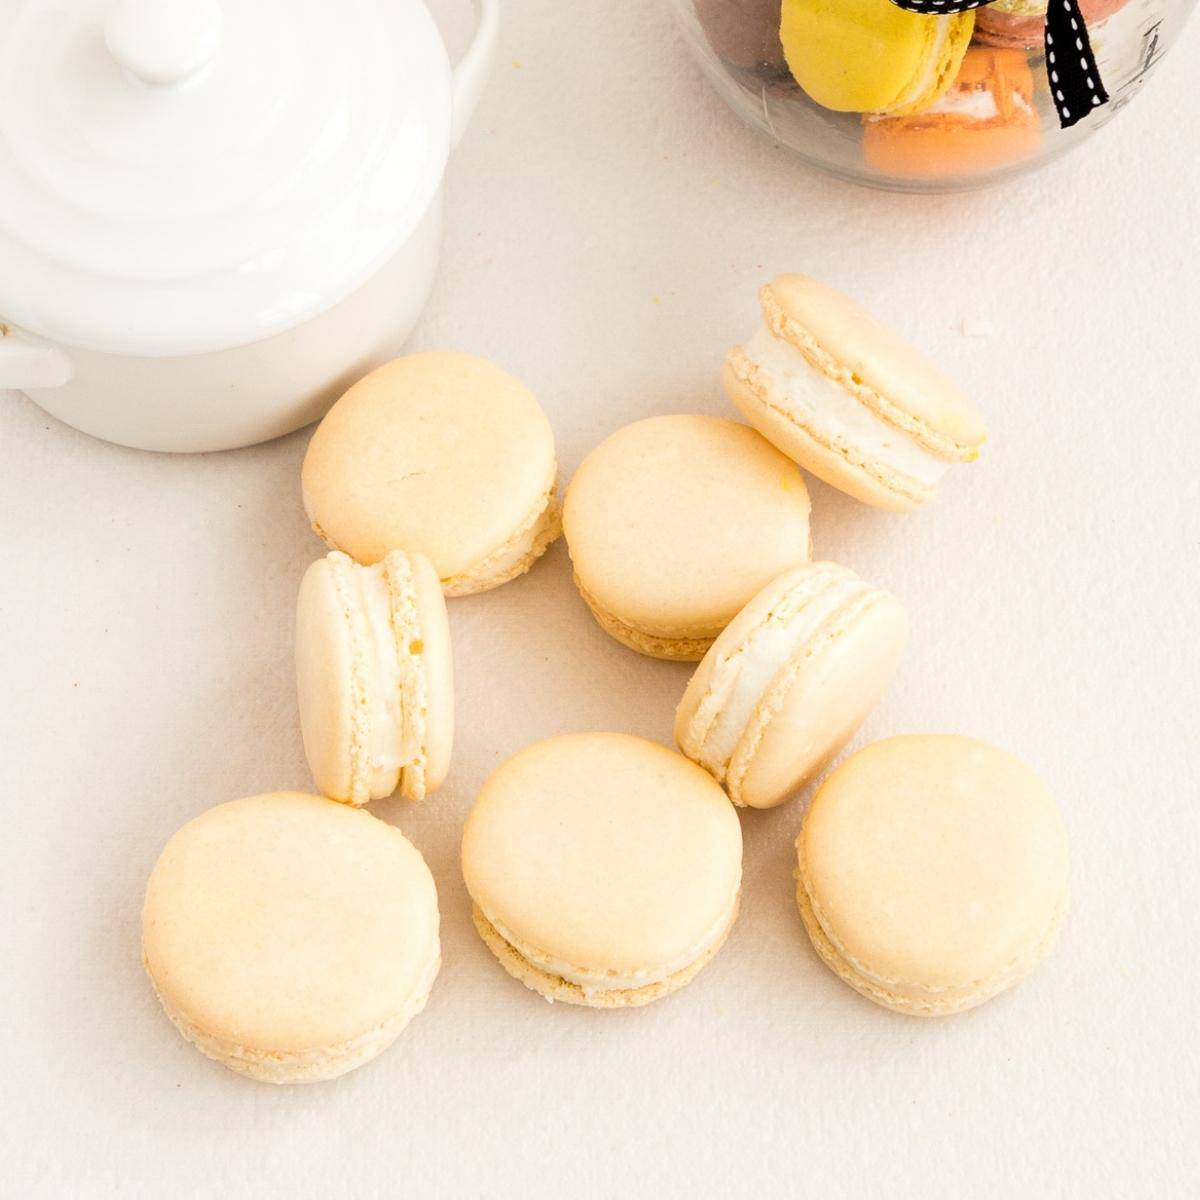 French macarons on a white table